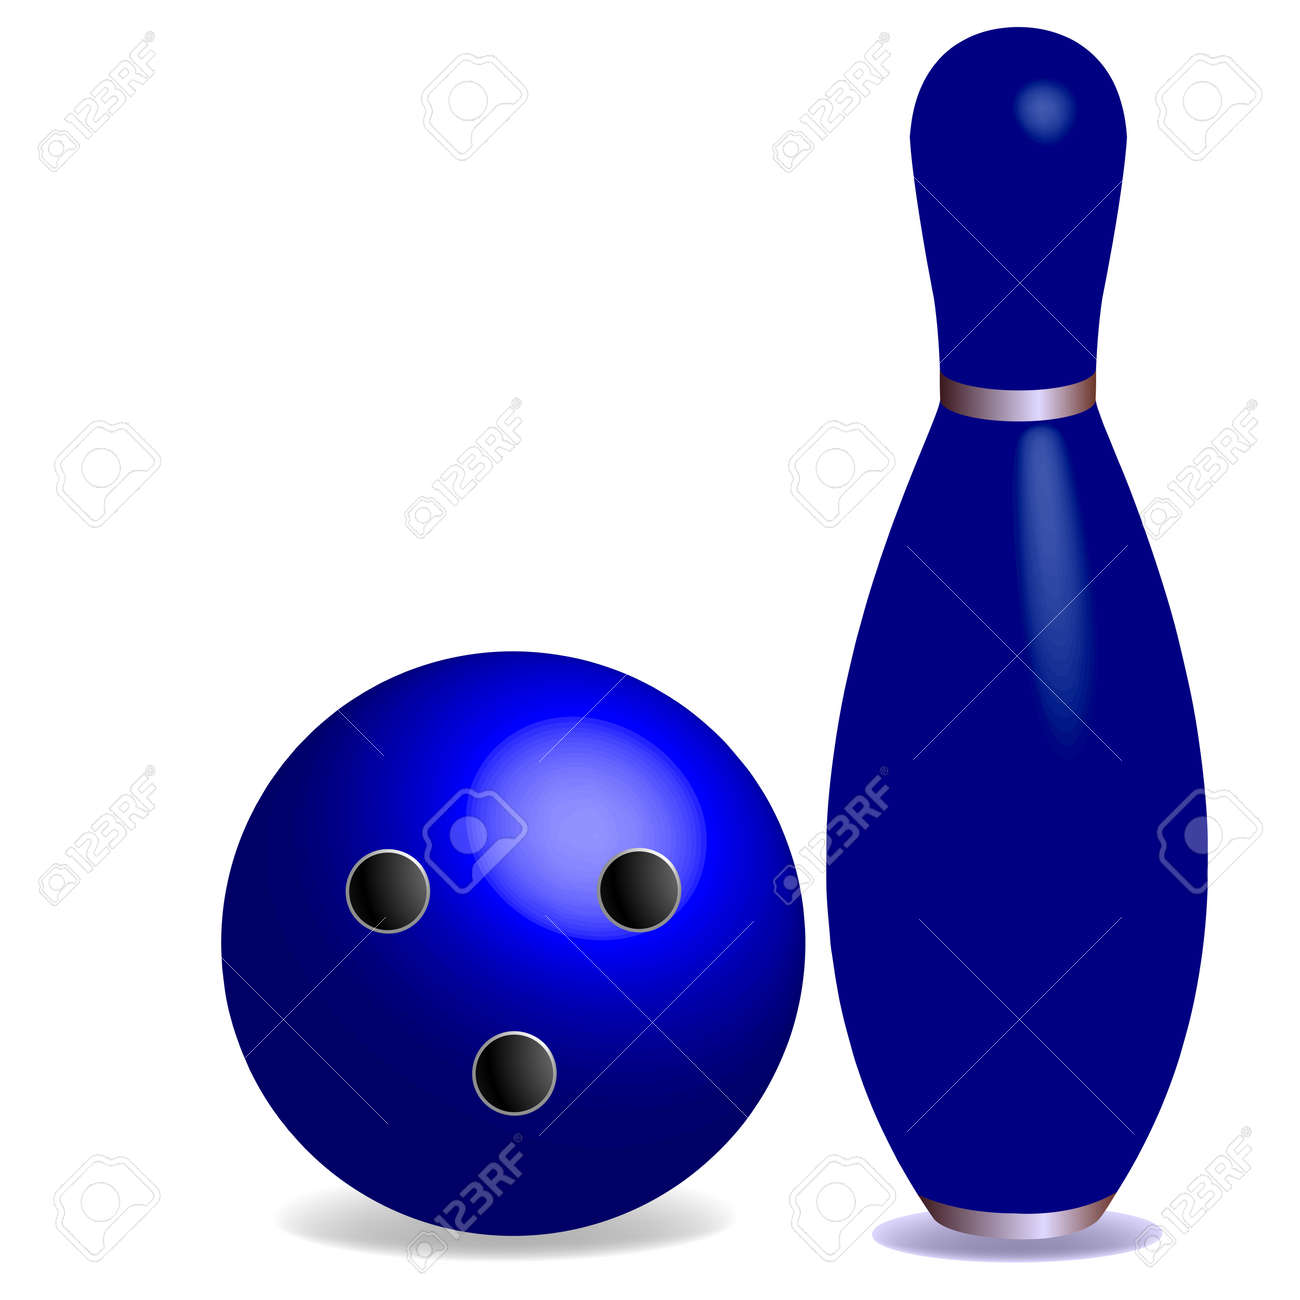 bowling concept, with room for text, abstract art illustration Stock Vector - 6690454